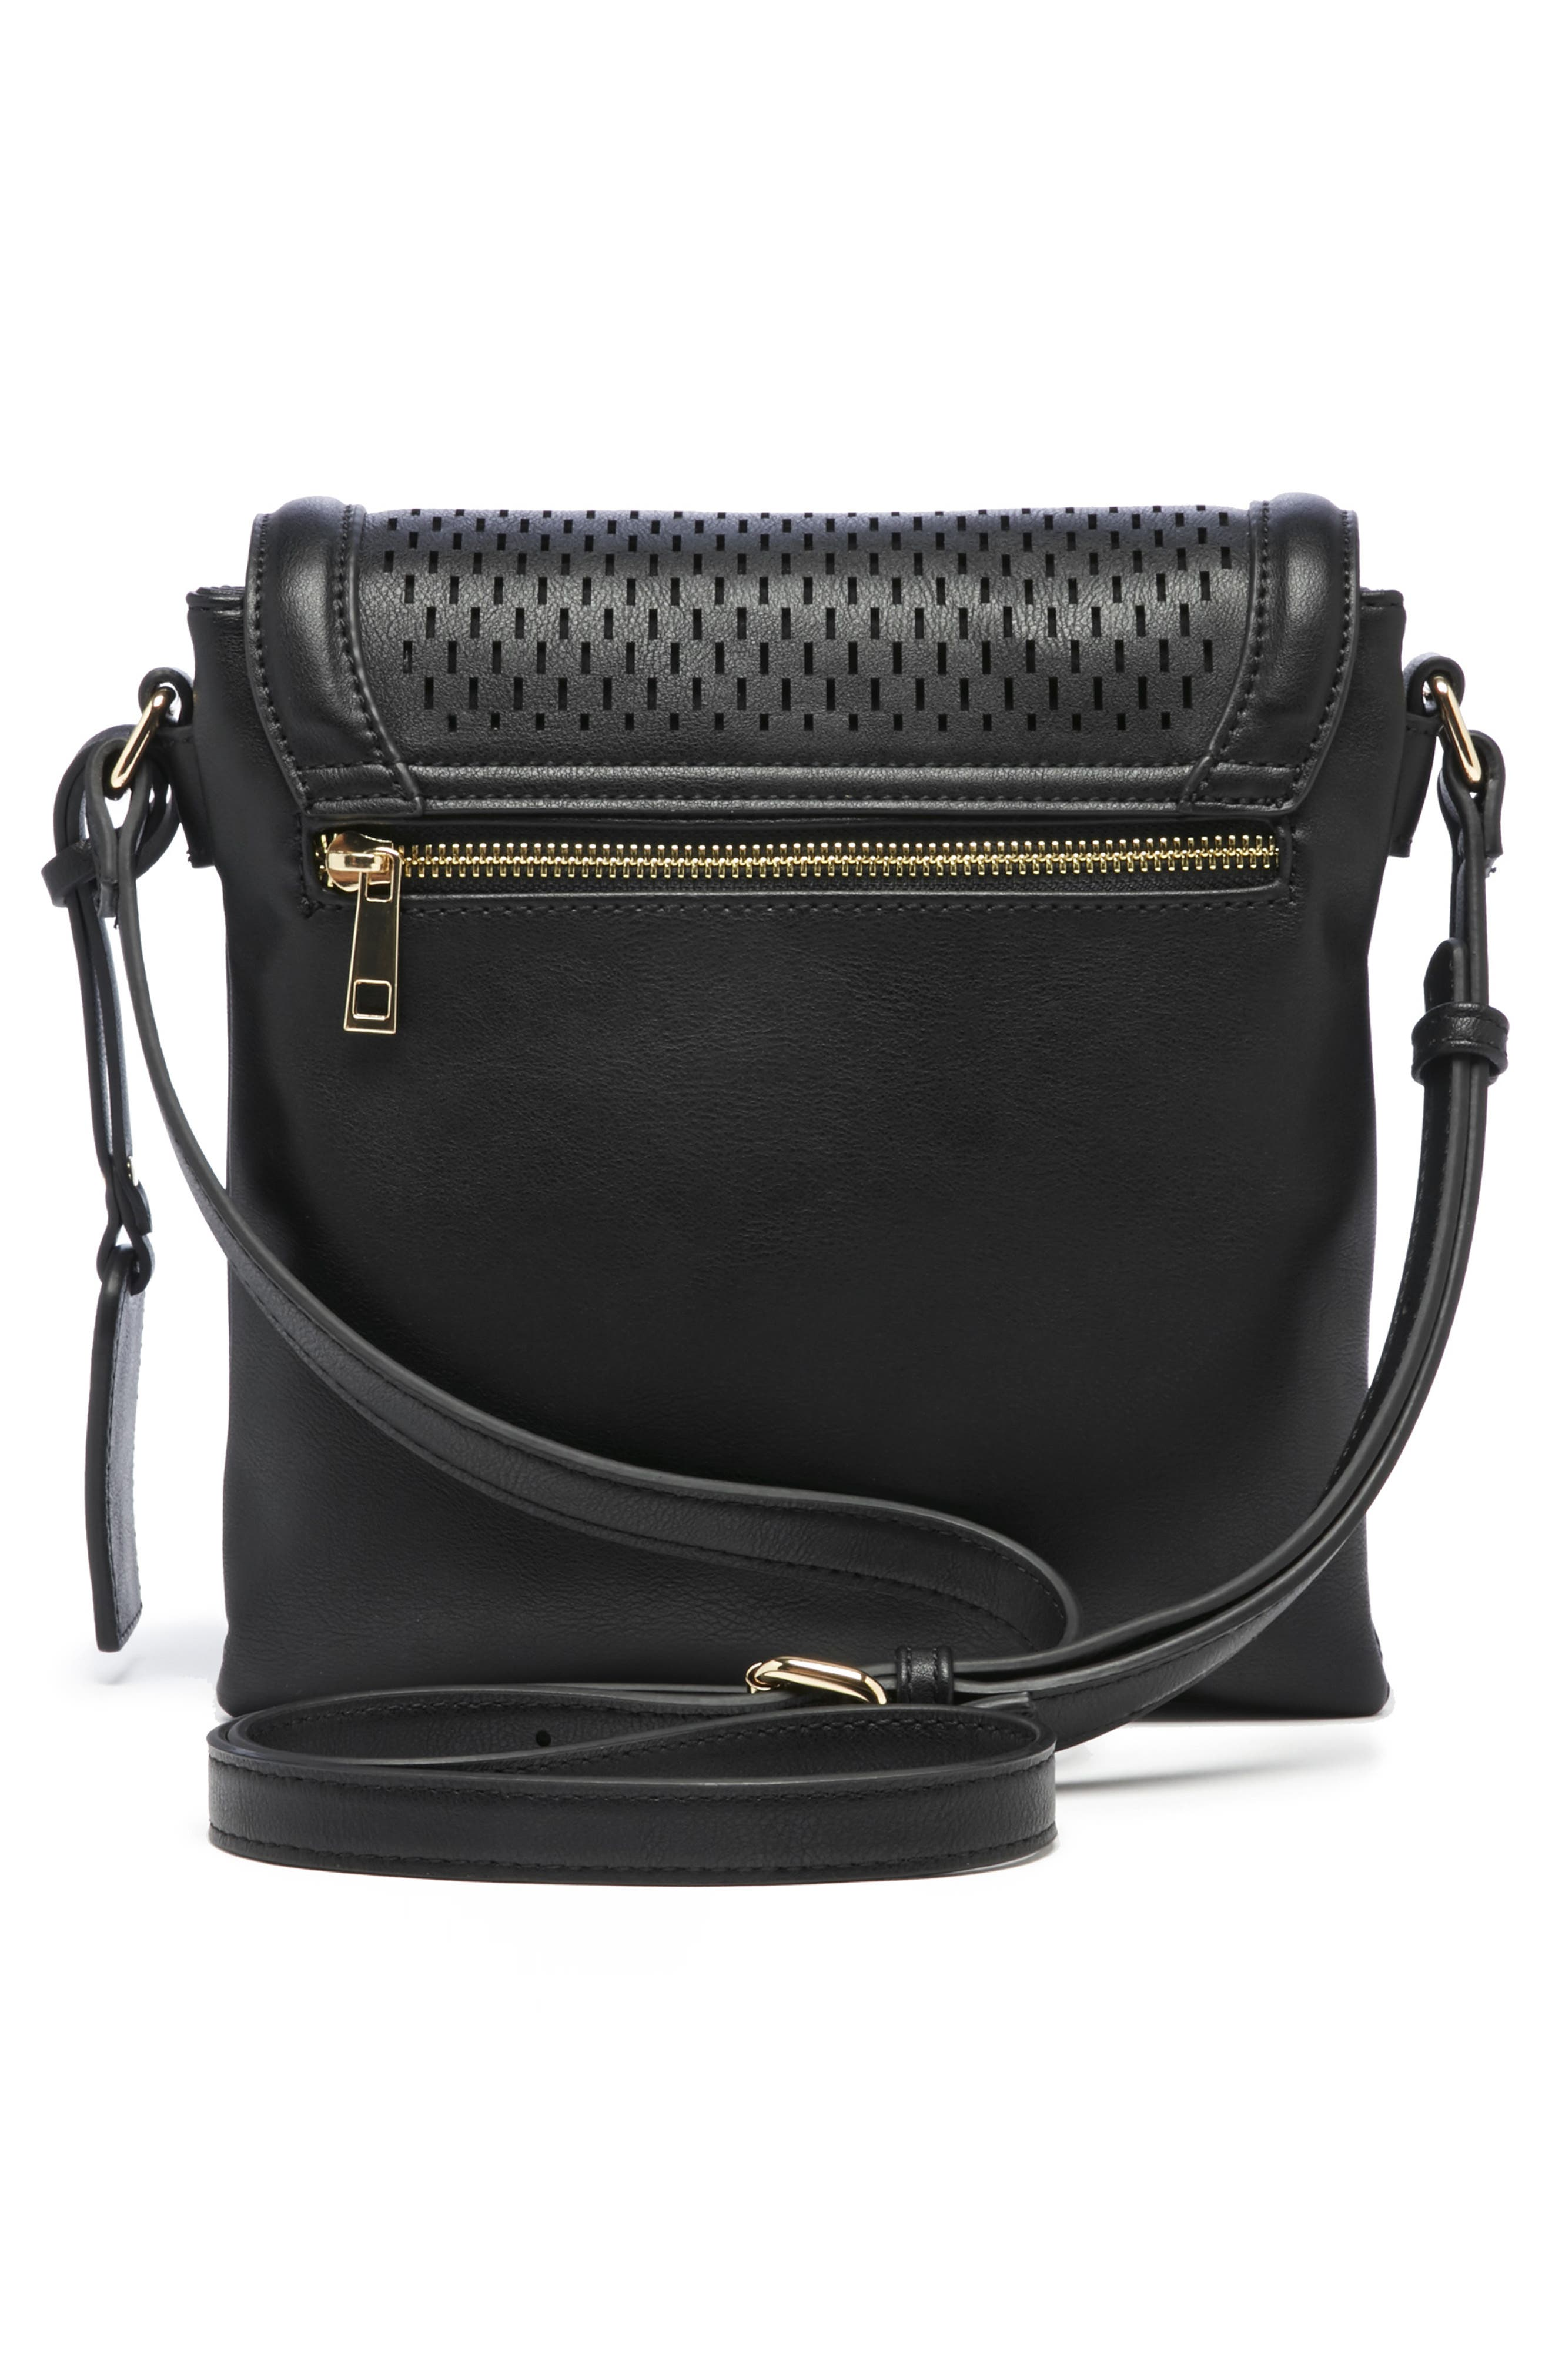 SOLE SOCIETY, Daisa Faux Leather Crossbody Bag, Alternate thumbnail 2, color, 001